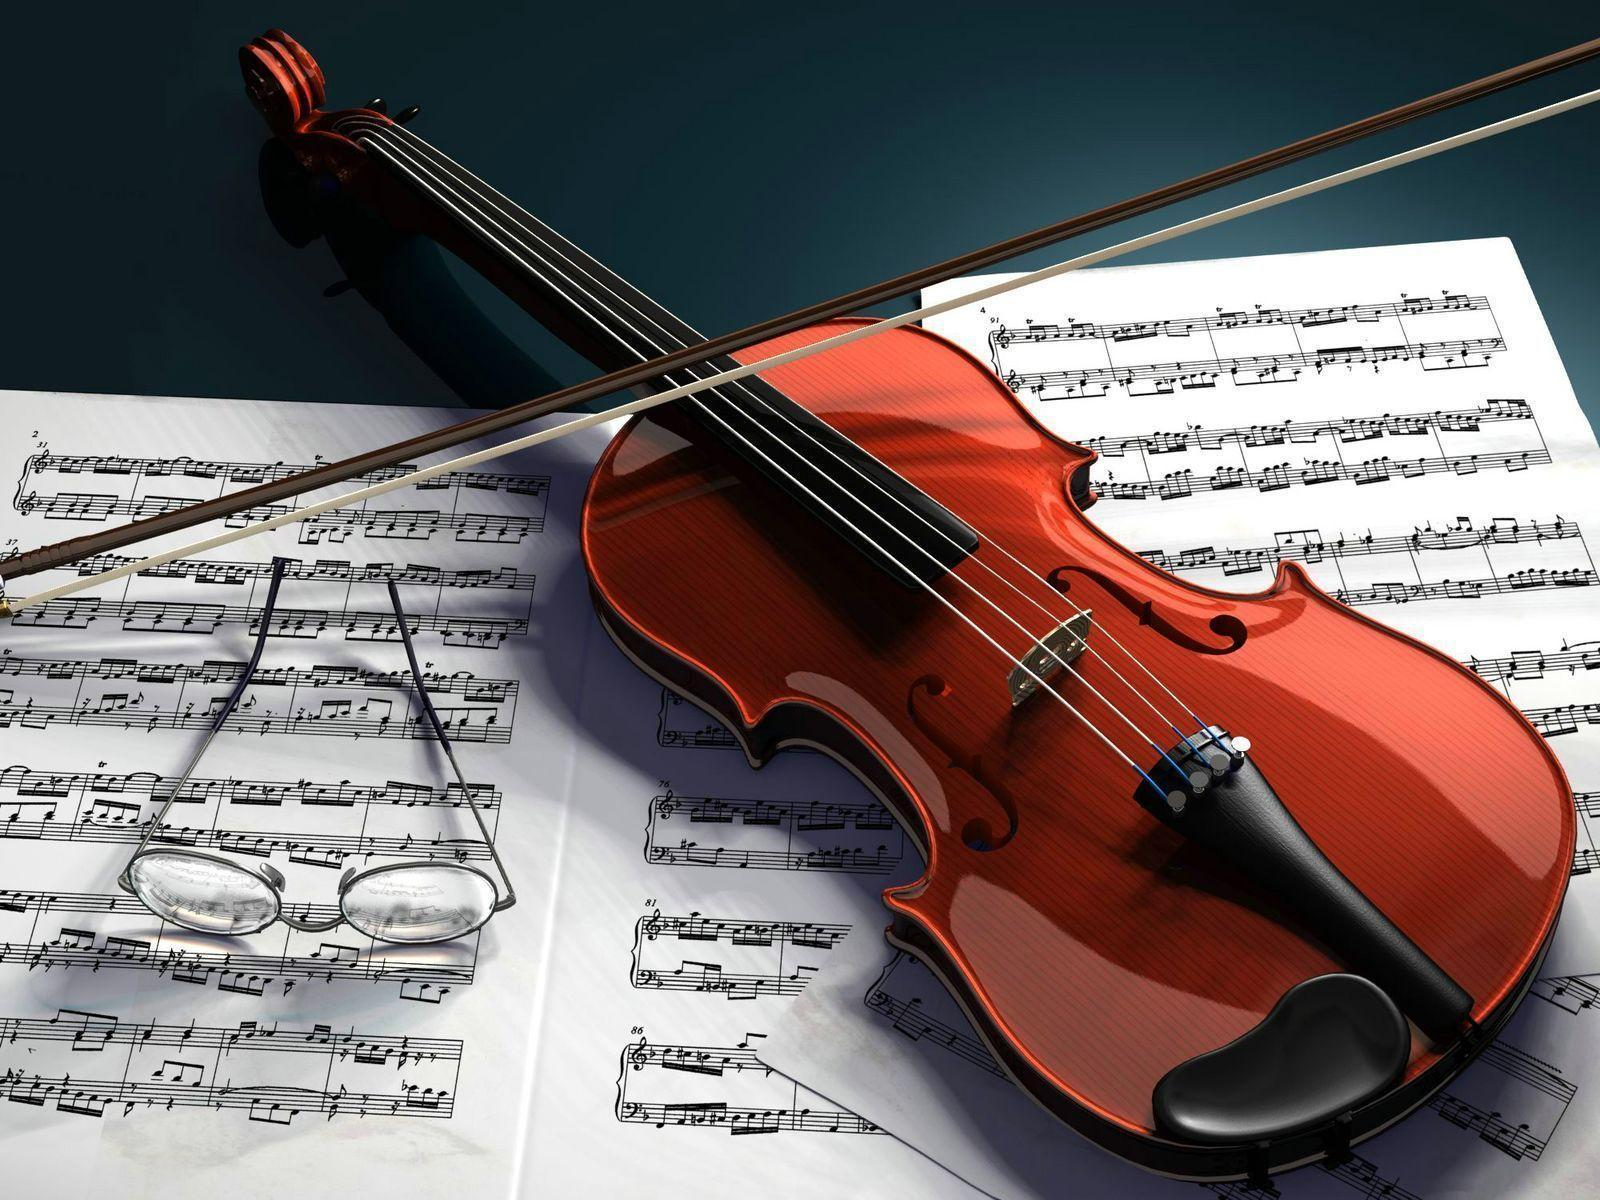 Playing Violin Instrument Wallpaper #6478 Wallpaper | Wallpaper ...